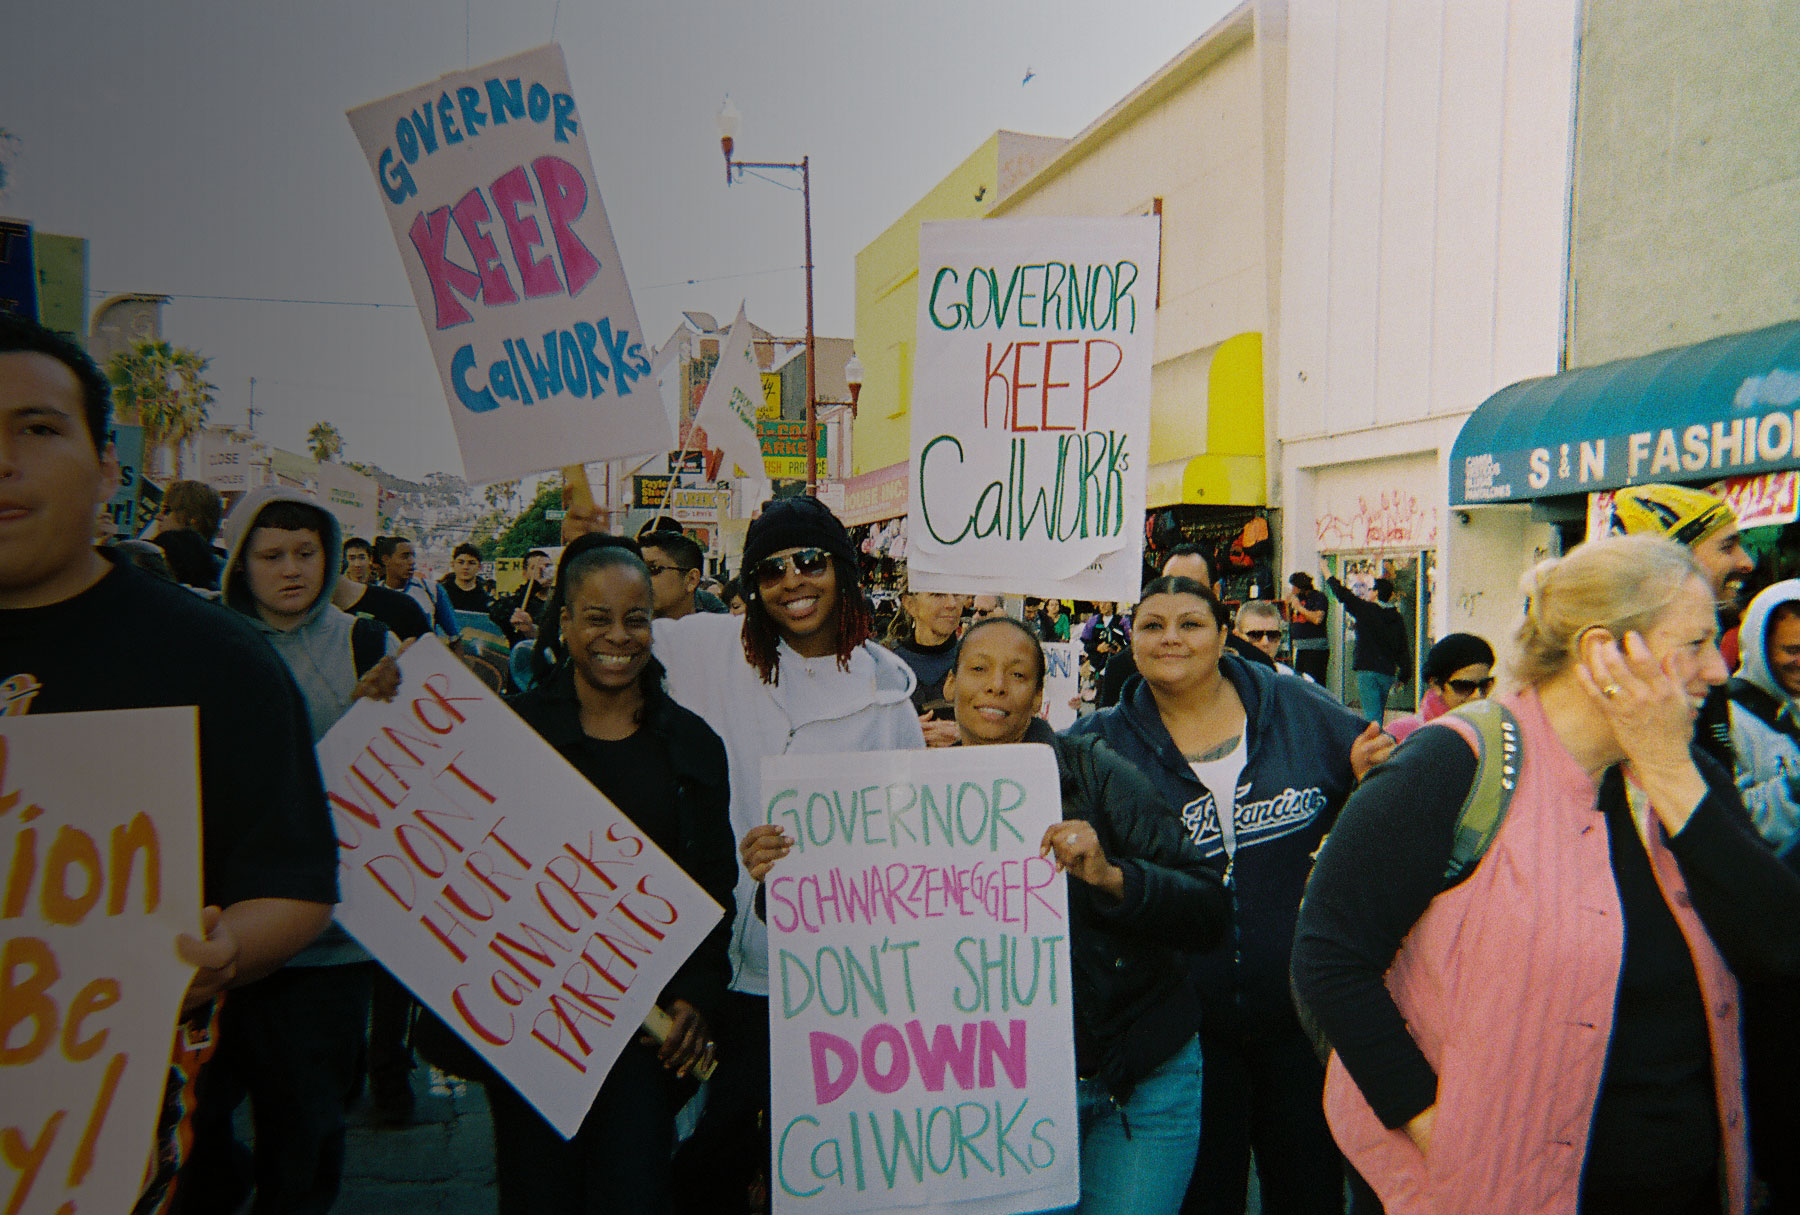 March-4-2010-march-and-rally-for-education-and-social-services_0020-2